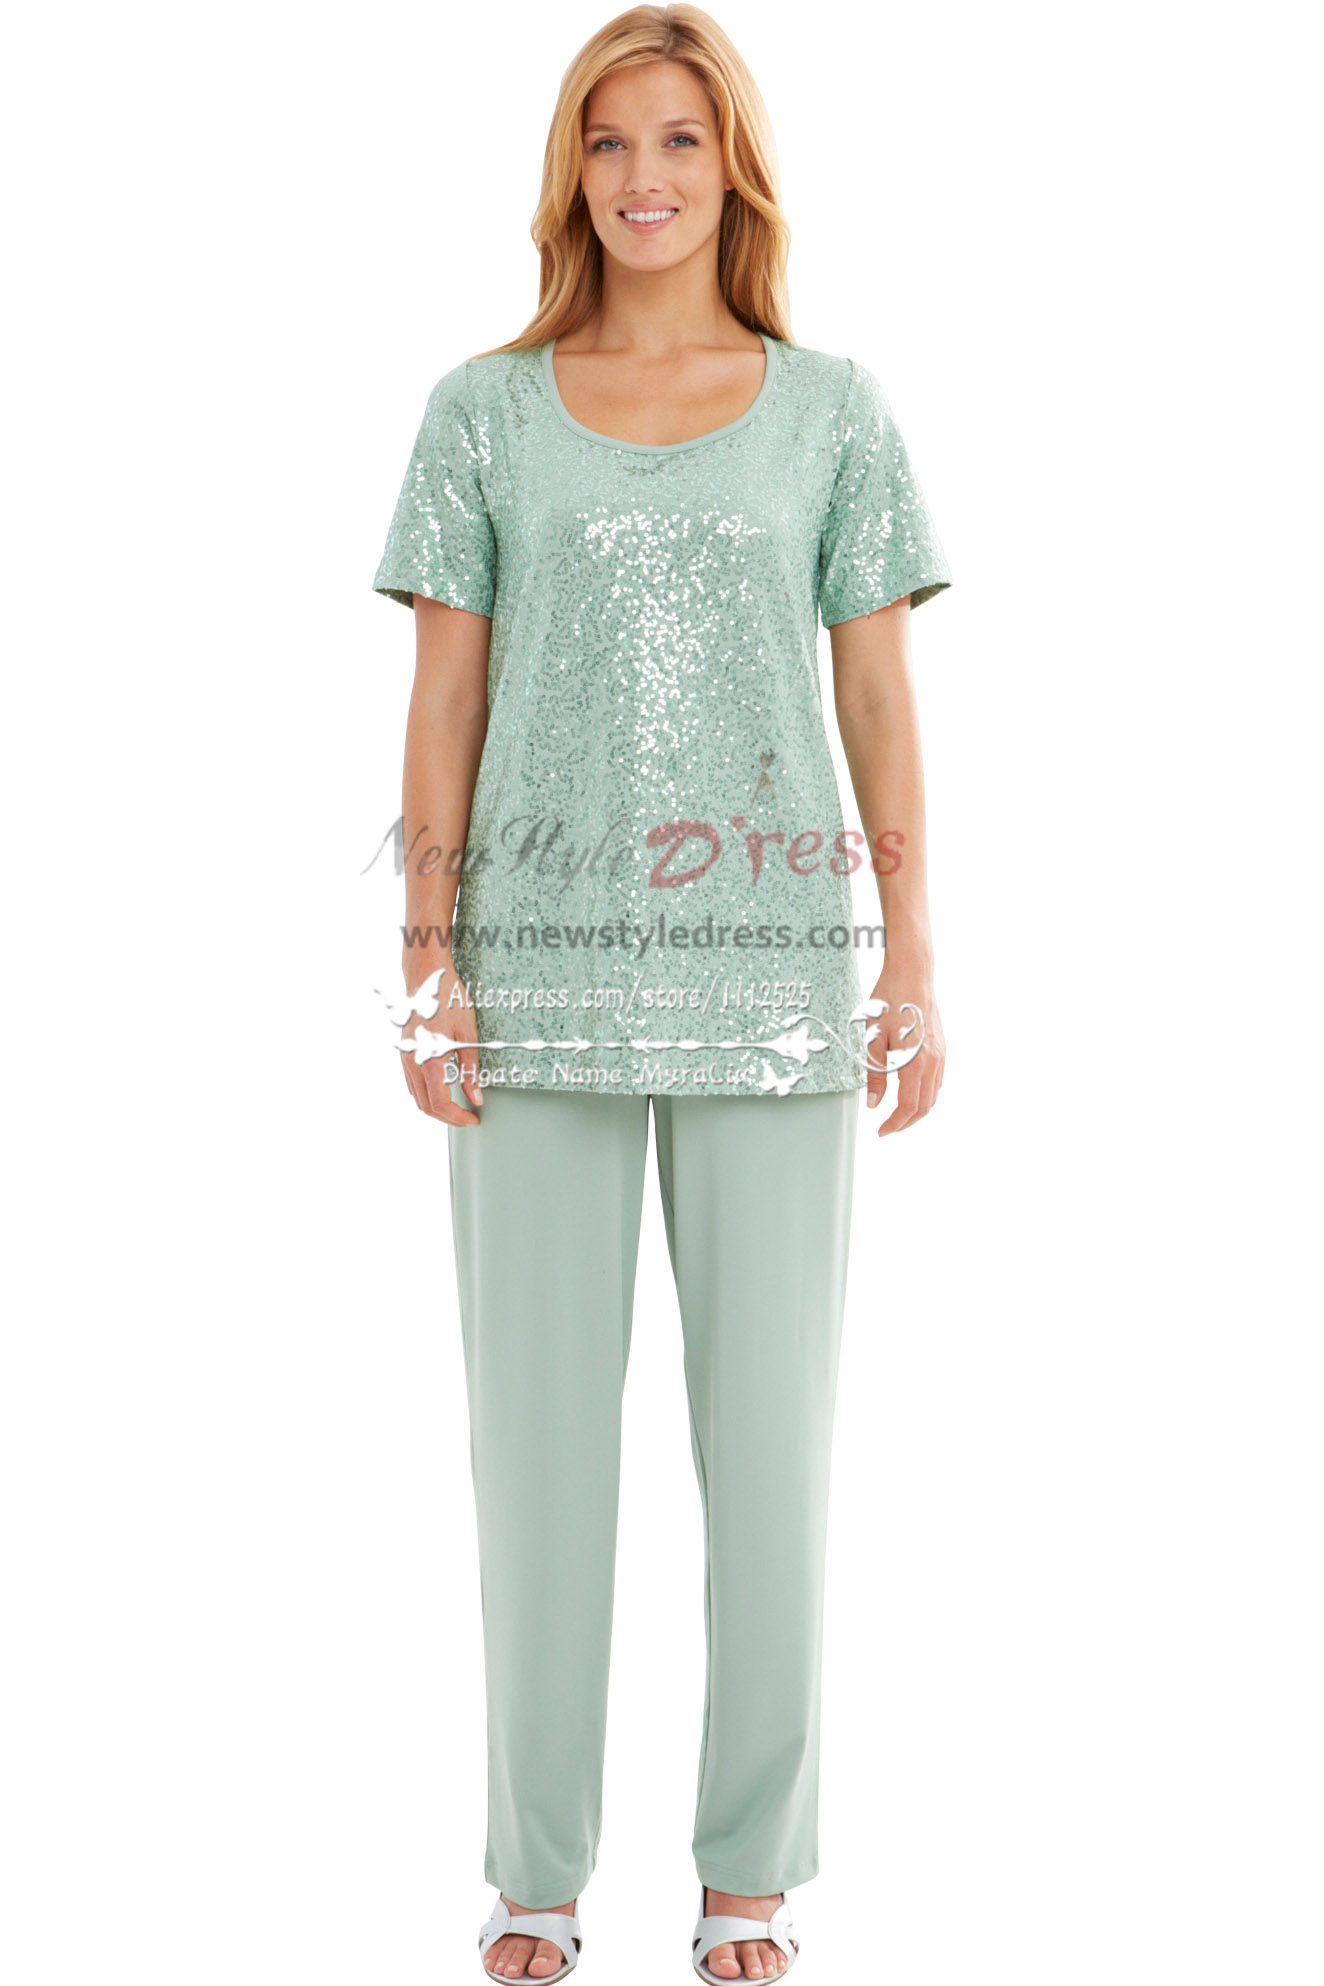 Modern Light Green Sequins mother of the bride pant suits nmo-168 ...